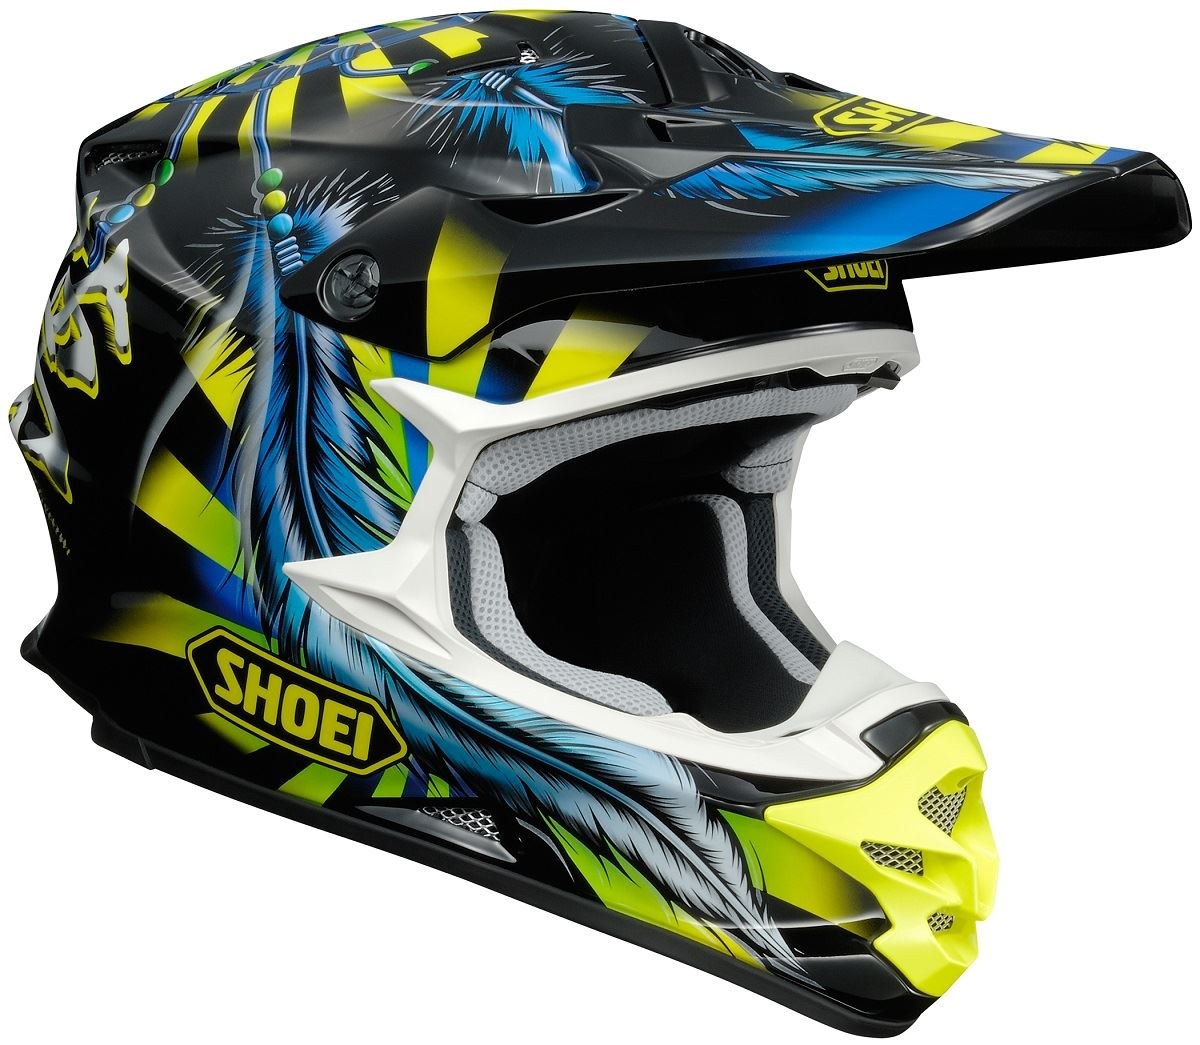 shoei vfx w grant 2 off road mx dirt bike helmet dot snell m2015 ebay. Black Bedroom Furniture Sets. Home Design Ideas